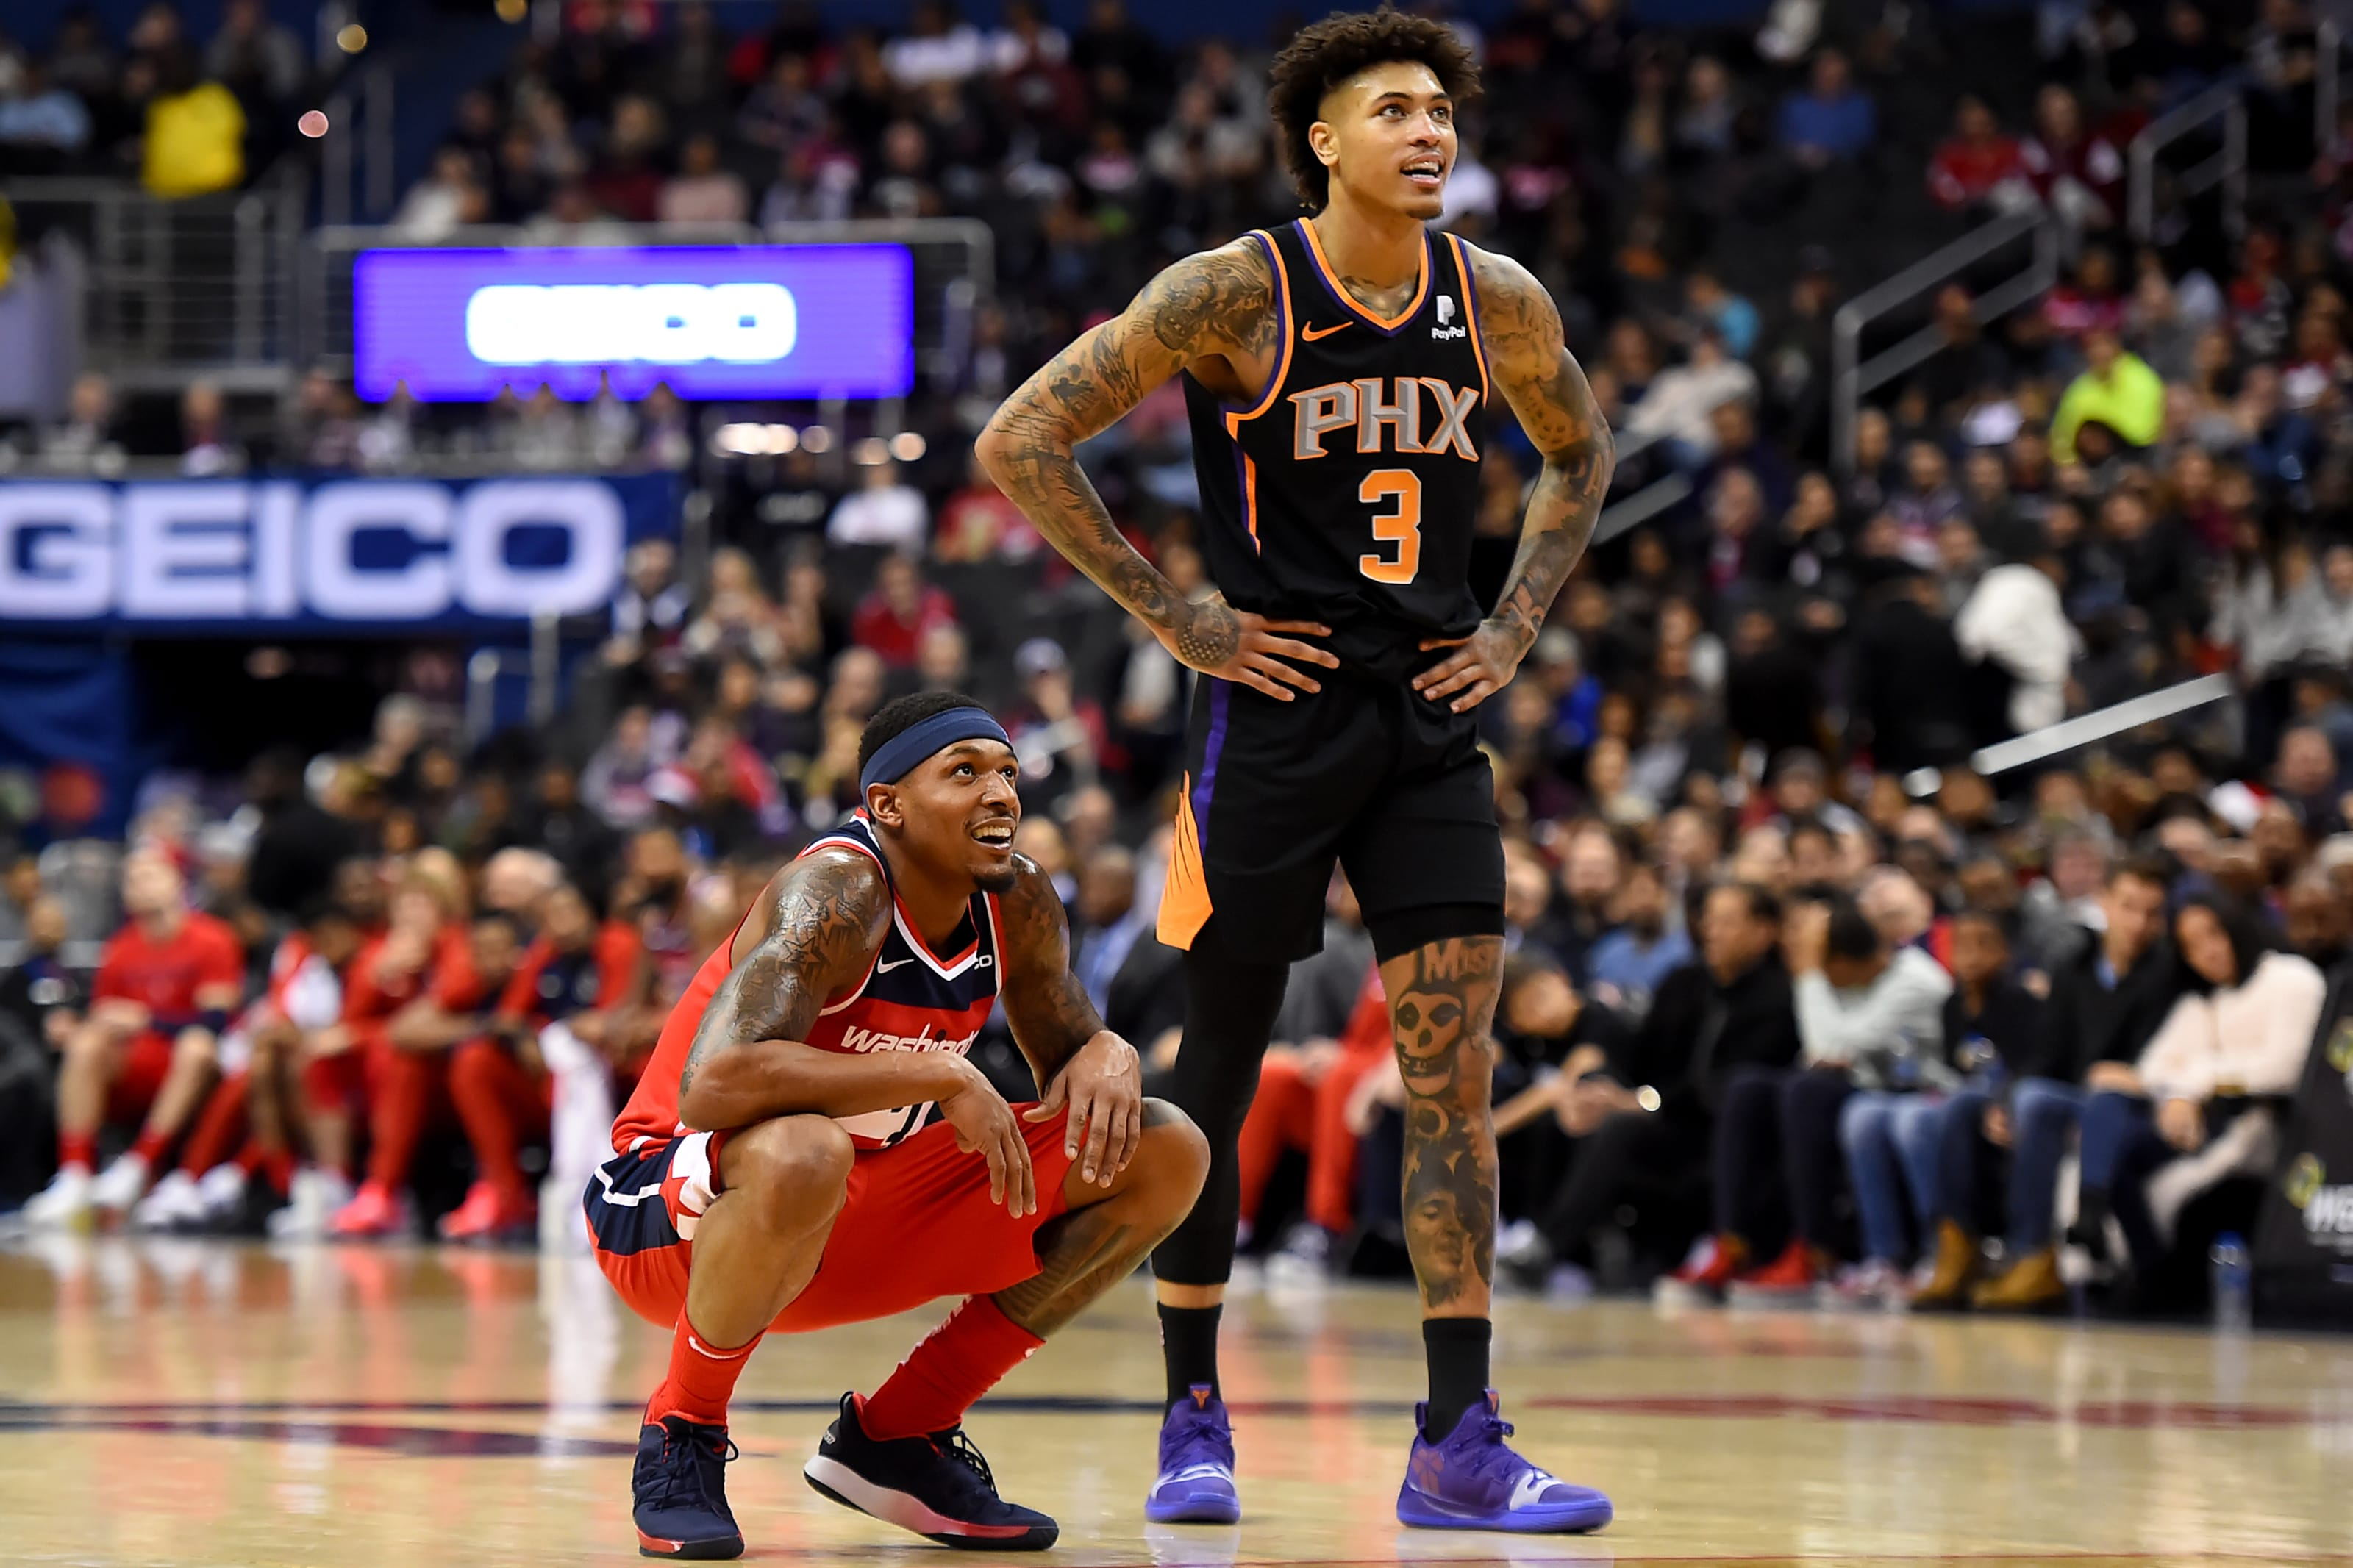 Bradley Beal Kelly Oubre Phoenix Suns (Photo by Will Newton/Getty Images)